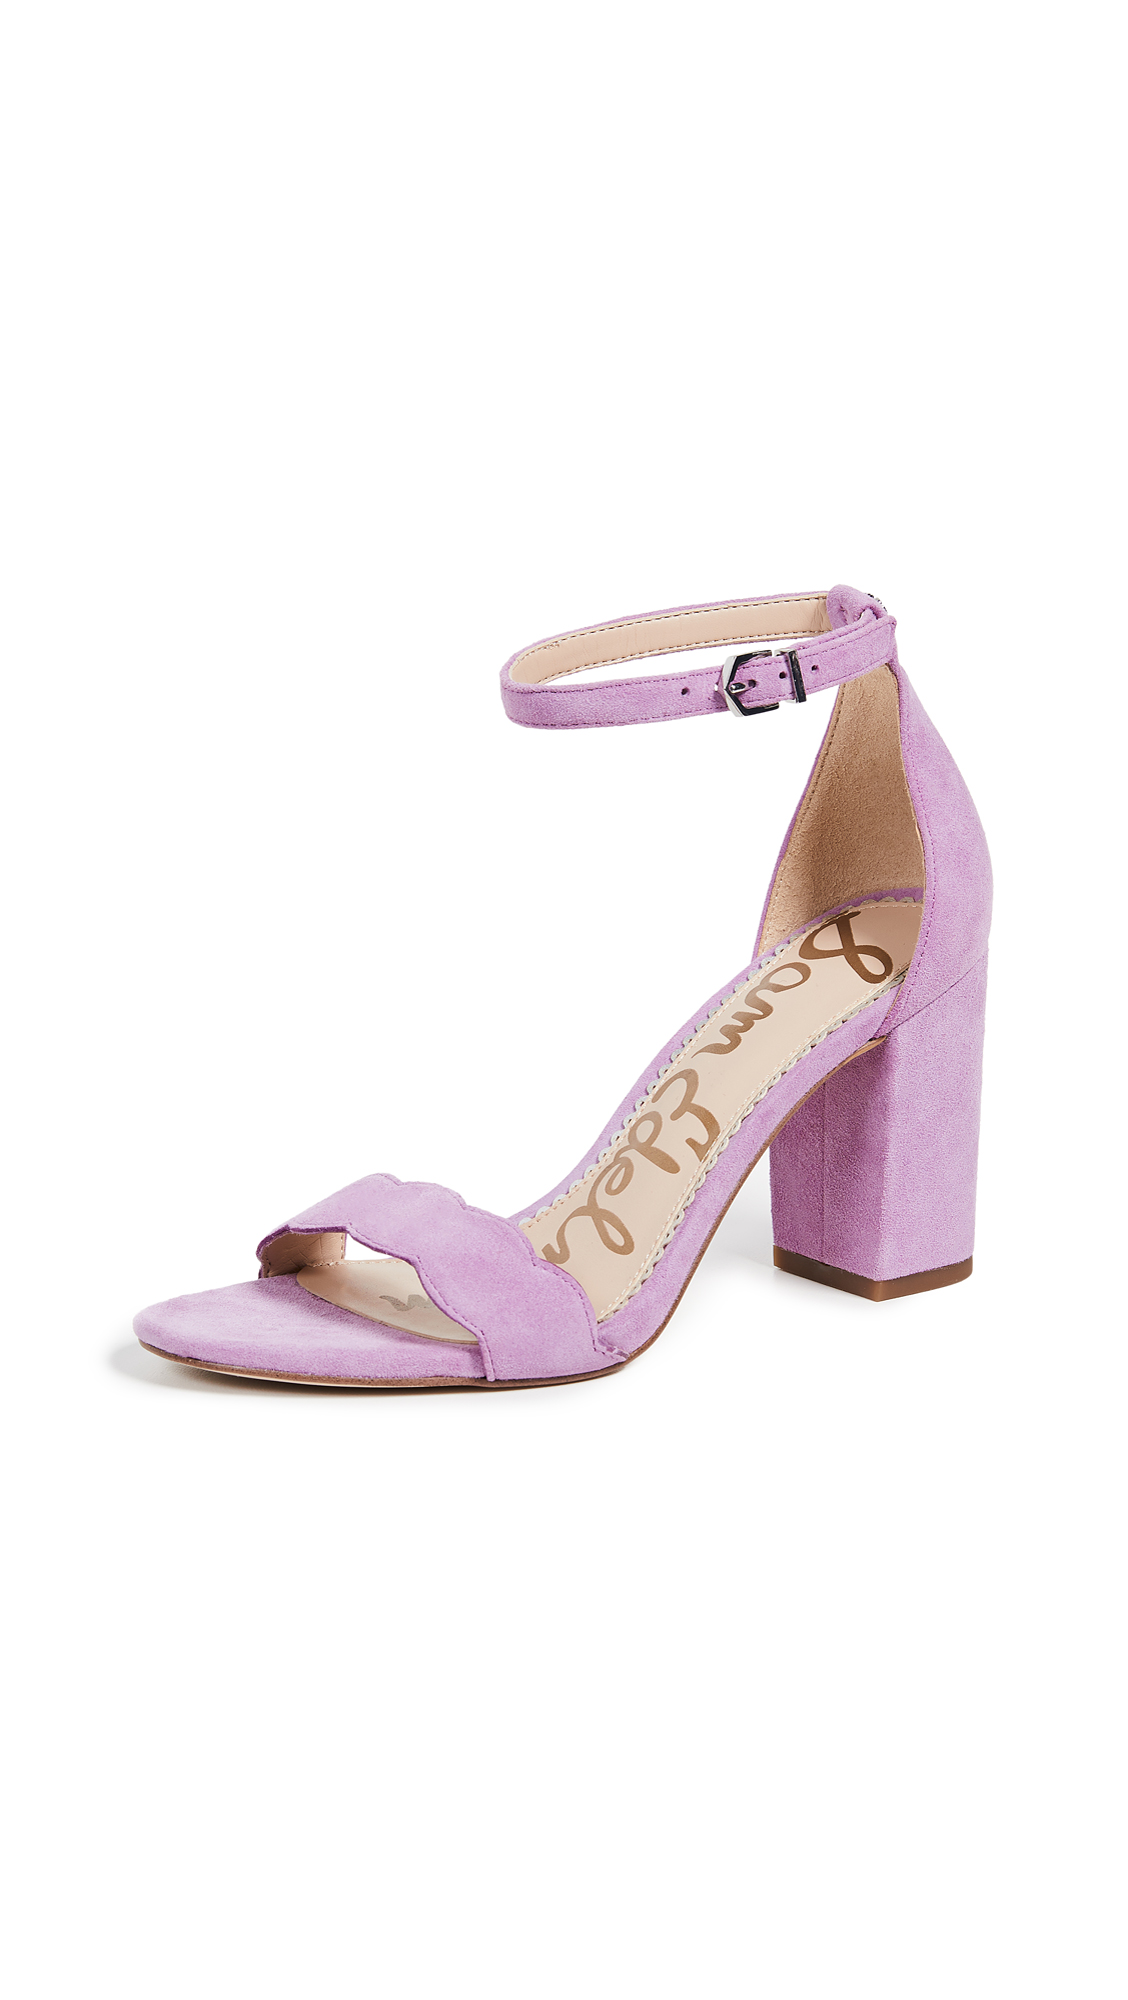 Sam Edelman Odila Sandals - Sweet Lilac